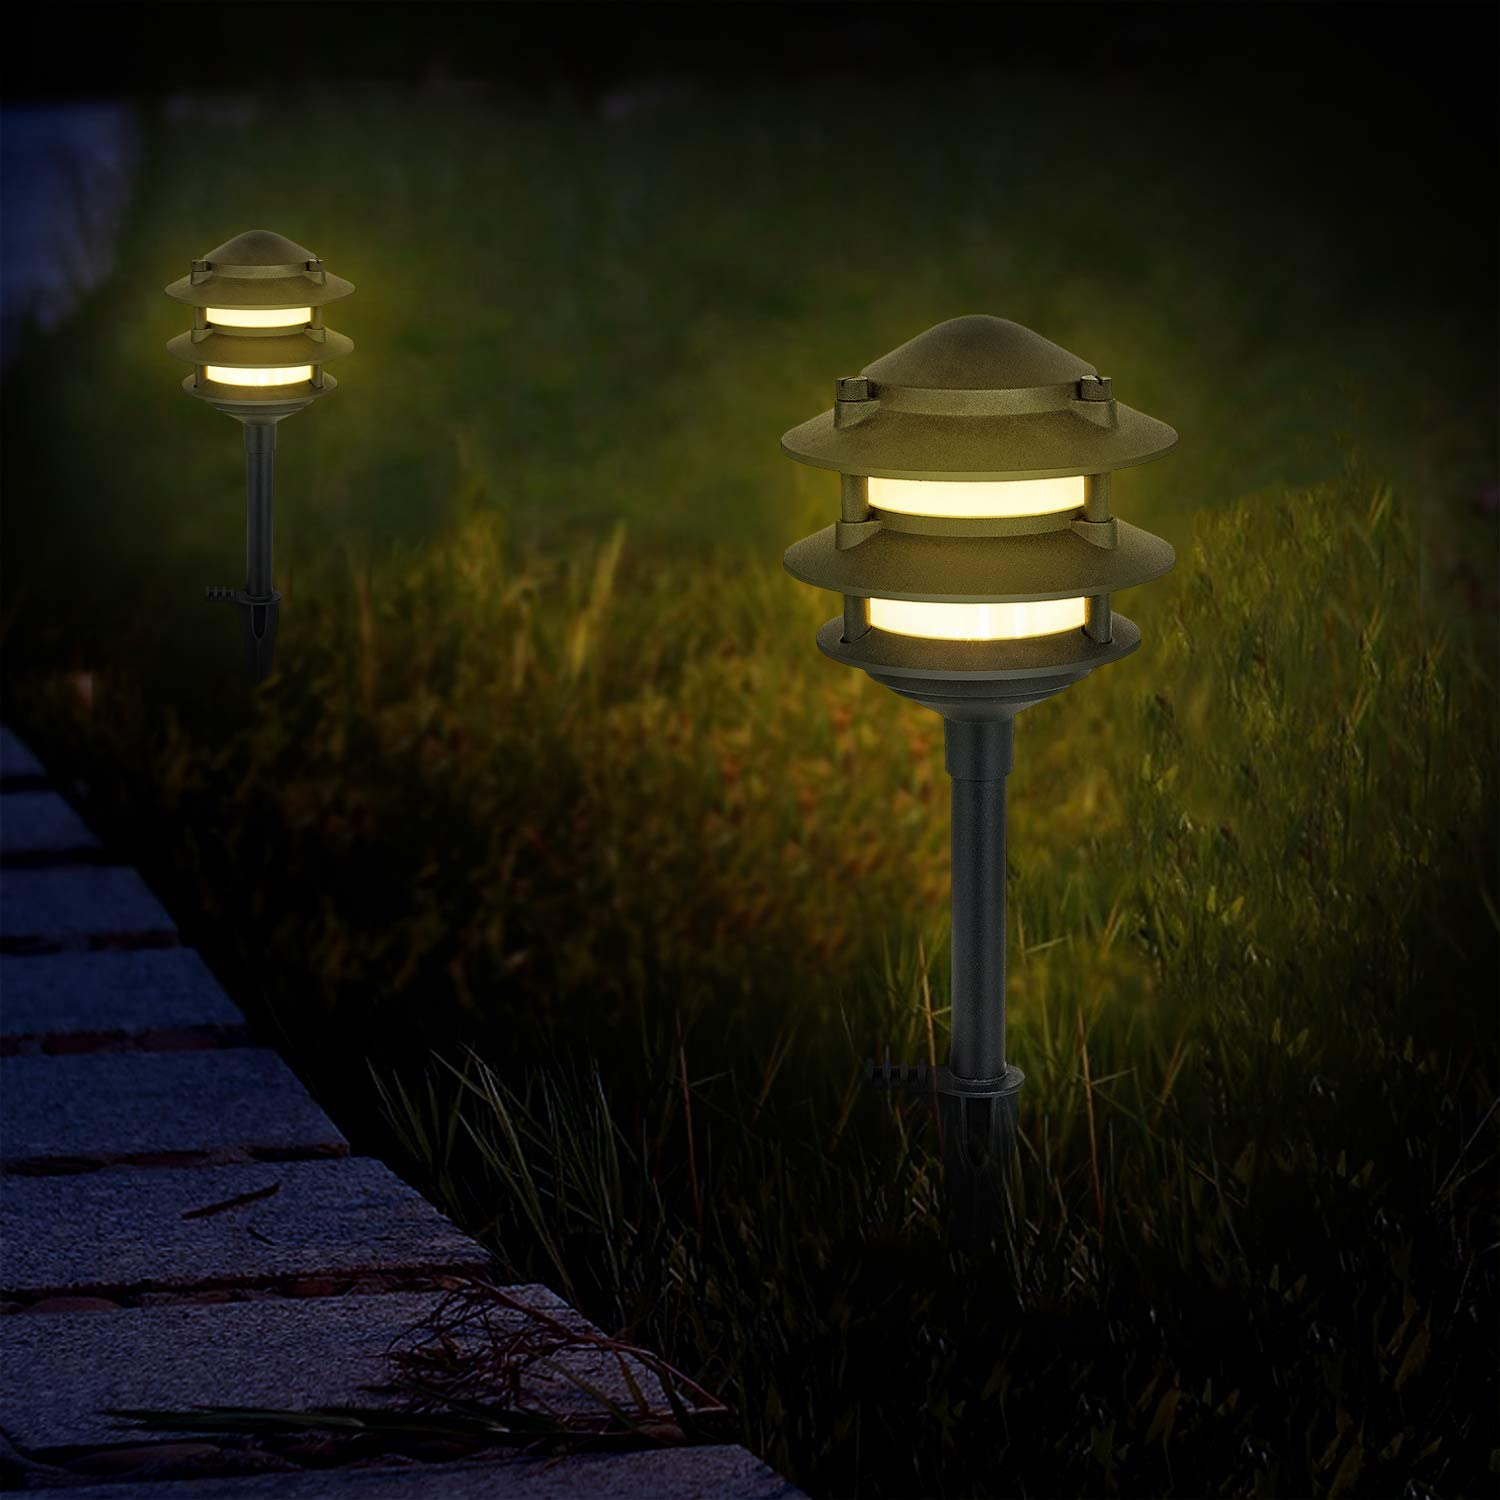 2pack, Matt Black Low Volt 2W White LED,Waterproof for Outdoor Body with Solid Glass and Aluminum Spike, MOON BAY 2731LED-NA x 2 Bollard Landscape Path Light